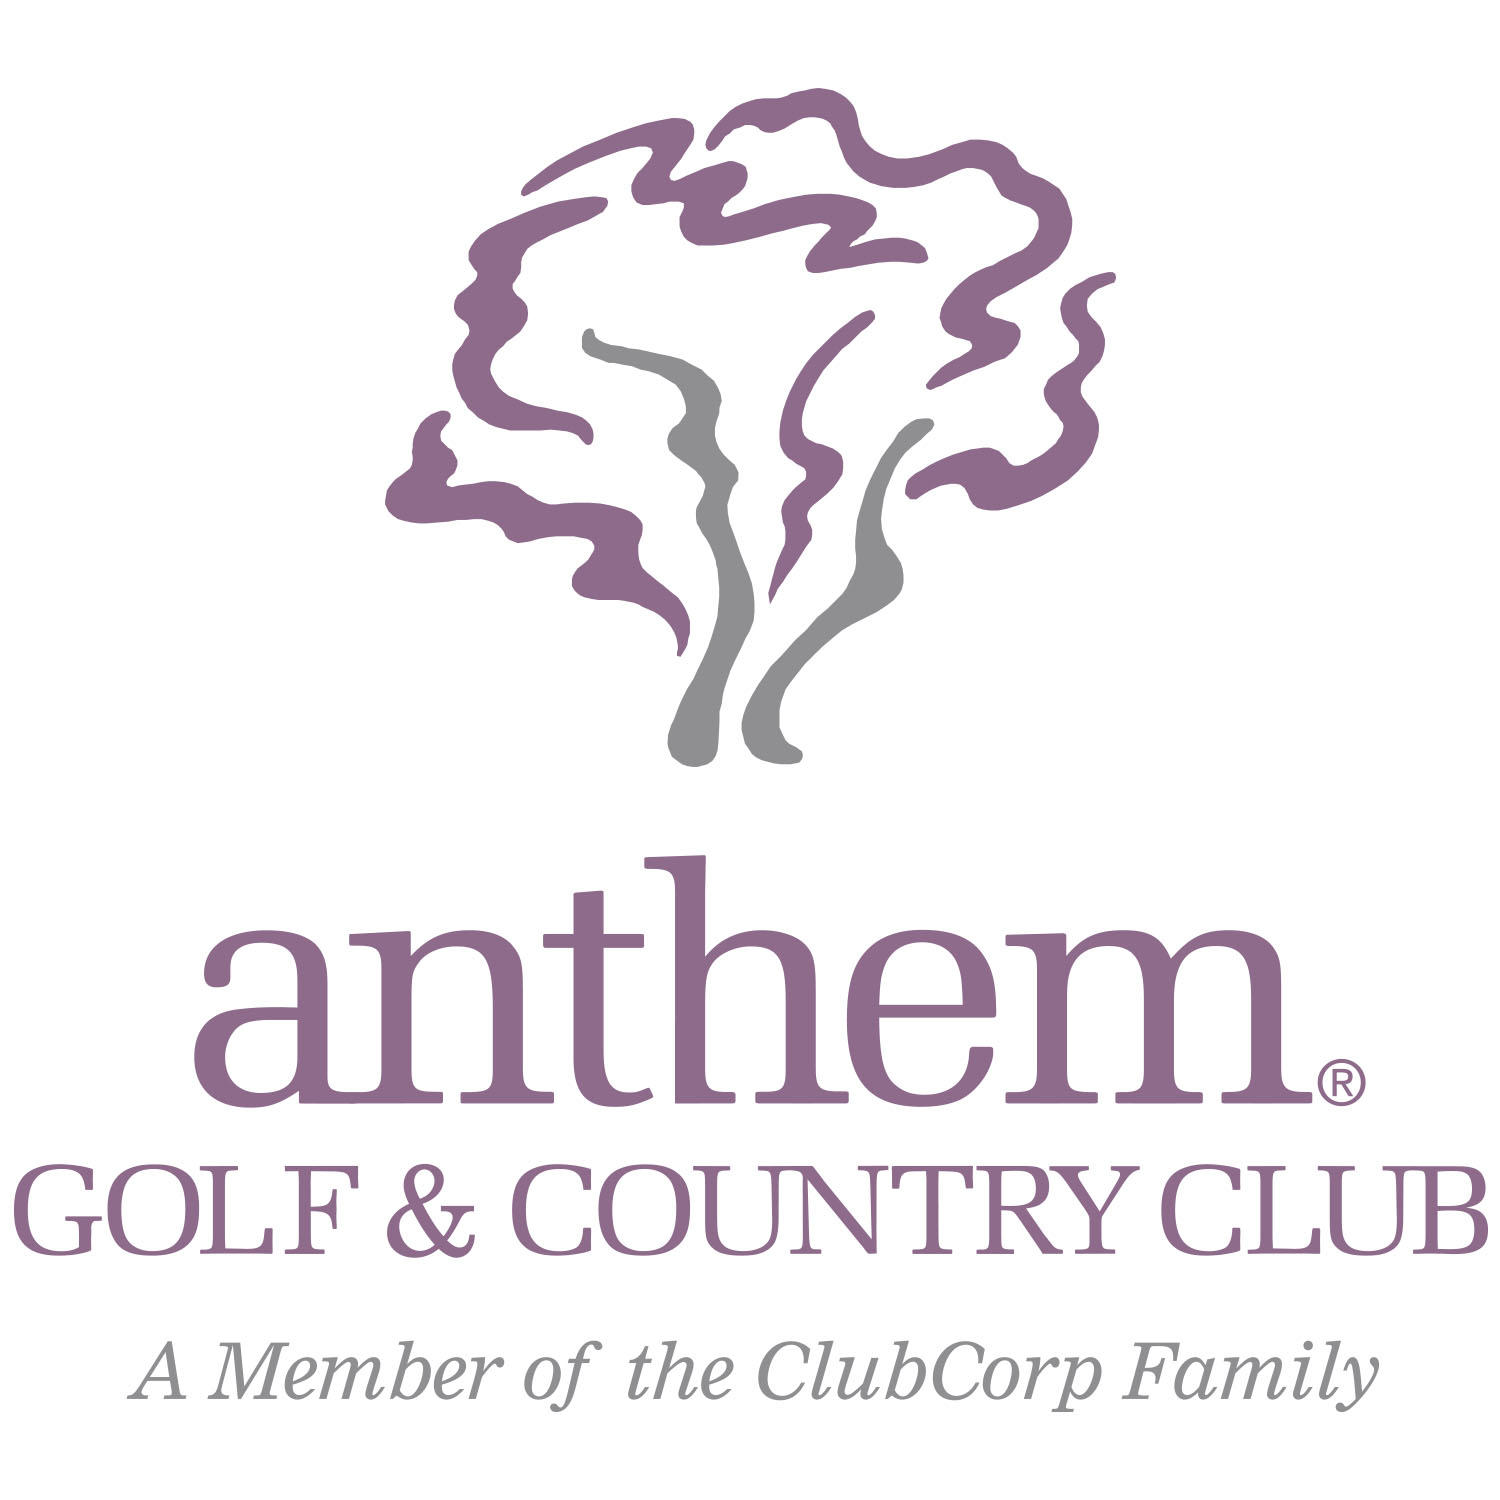 Anthem Golf & Country Club image 15